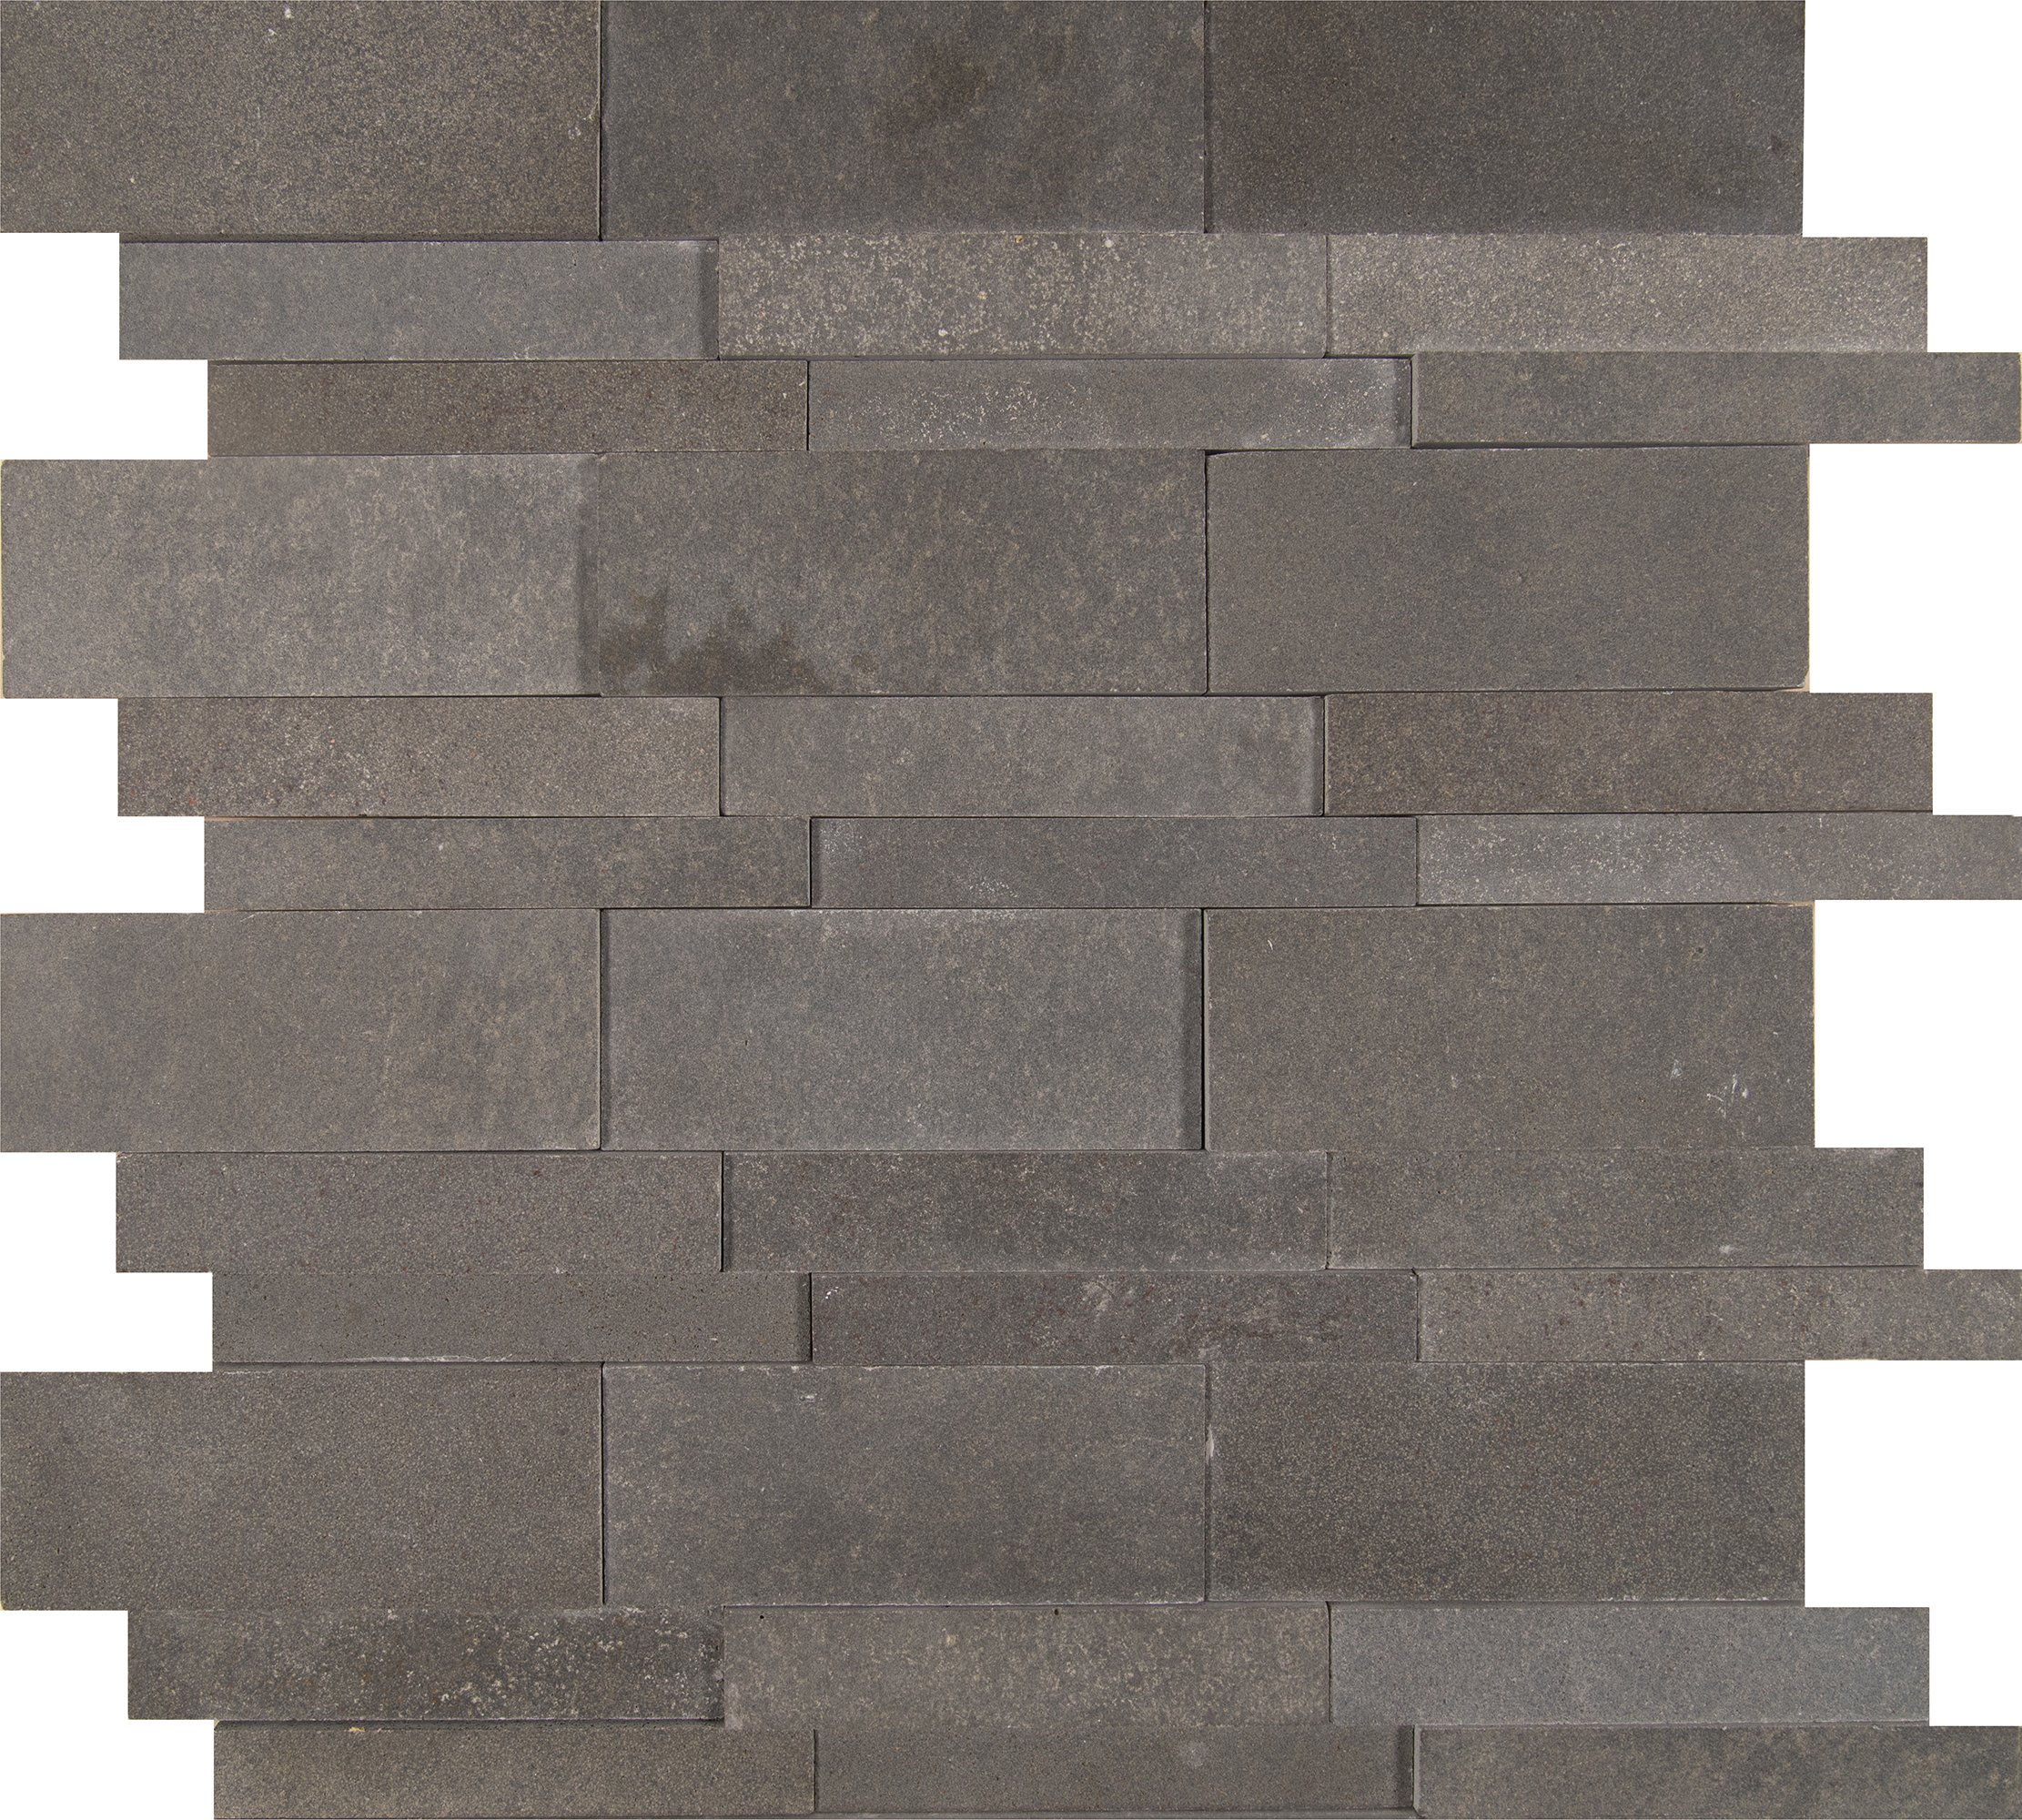 M S International Neptune 3D 12 In. X 10 mm Honed Basalt Mesh-Mounted Mosaic Wall Tile, (10 sq. ft., 10 pieces per case)